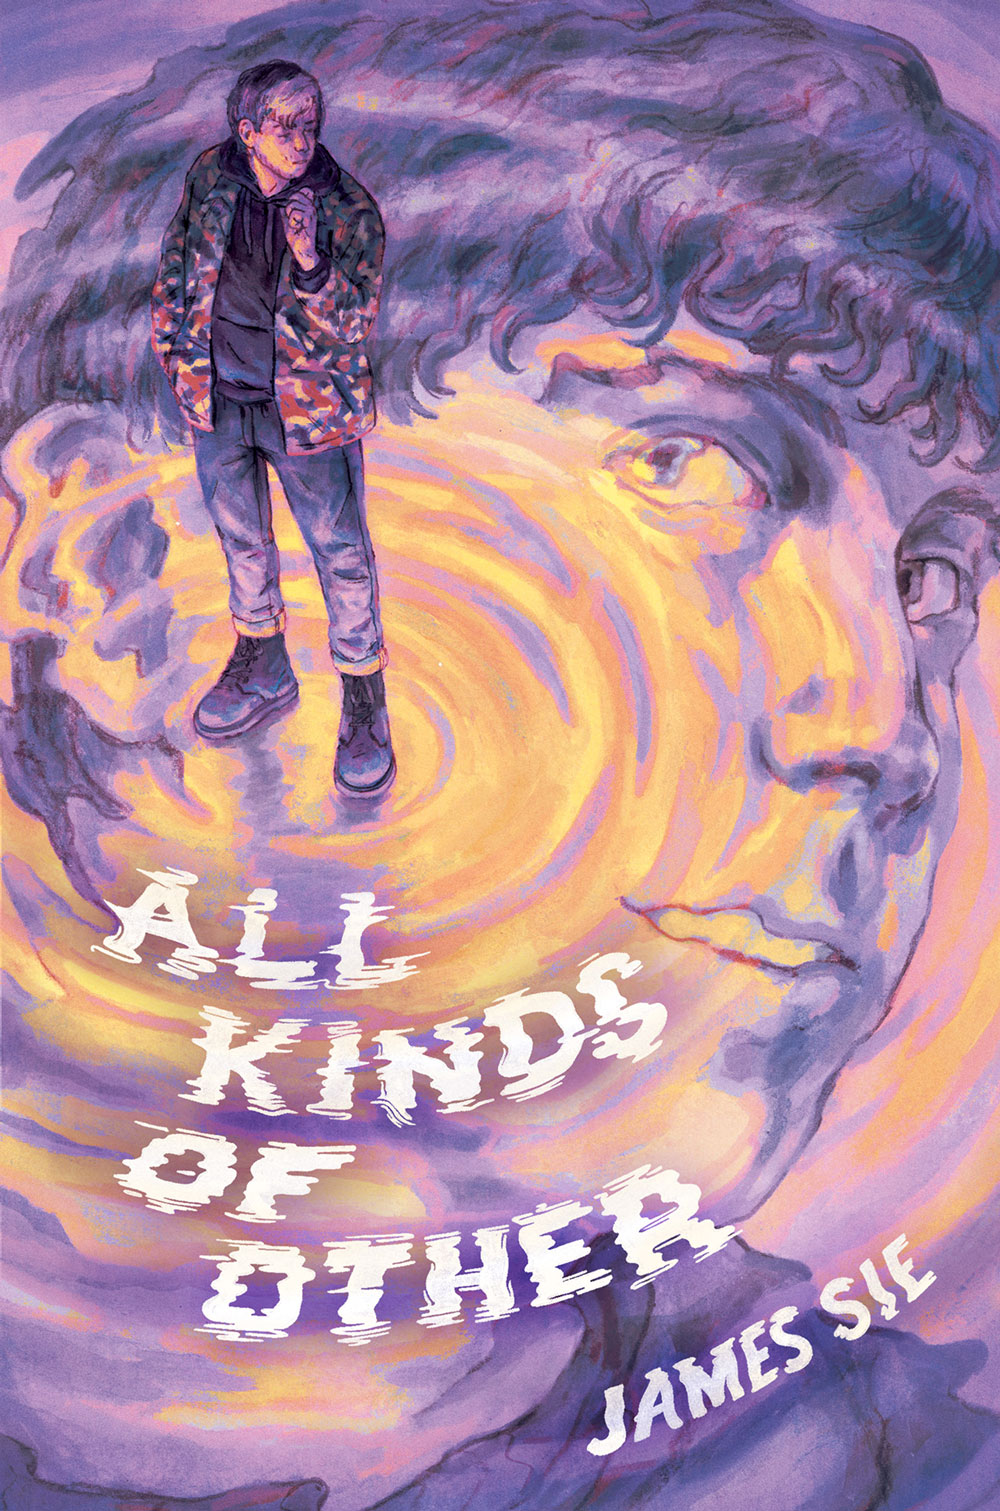 All Kinds of Other - a novel by James Sie